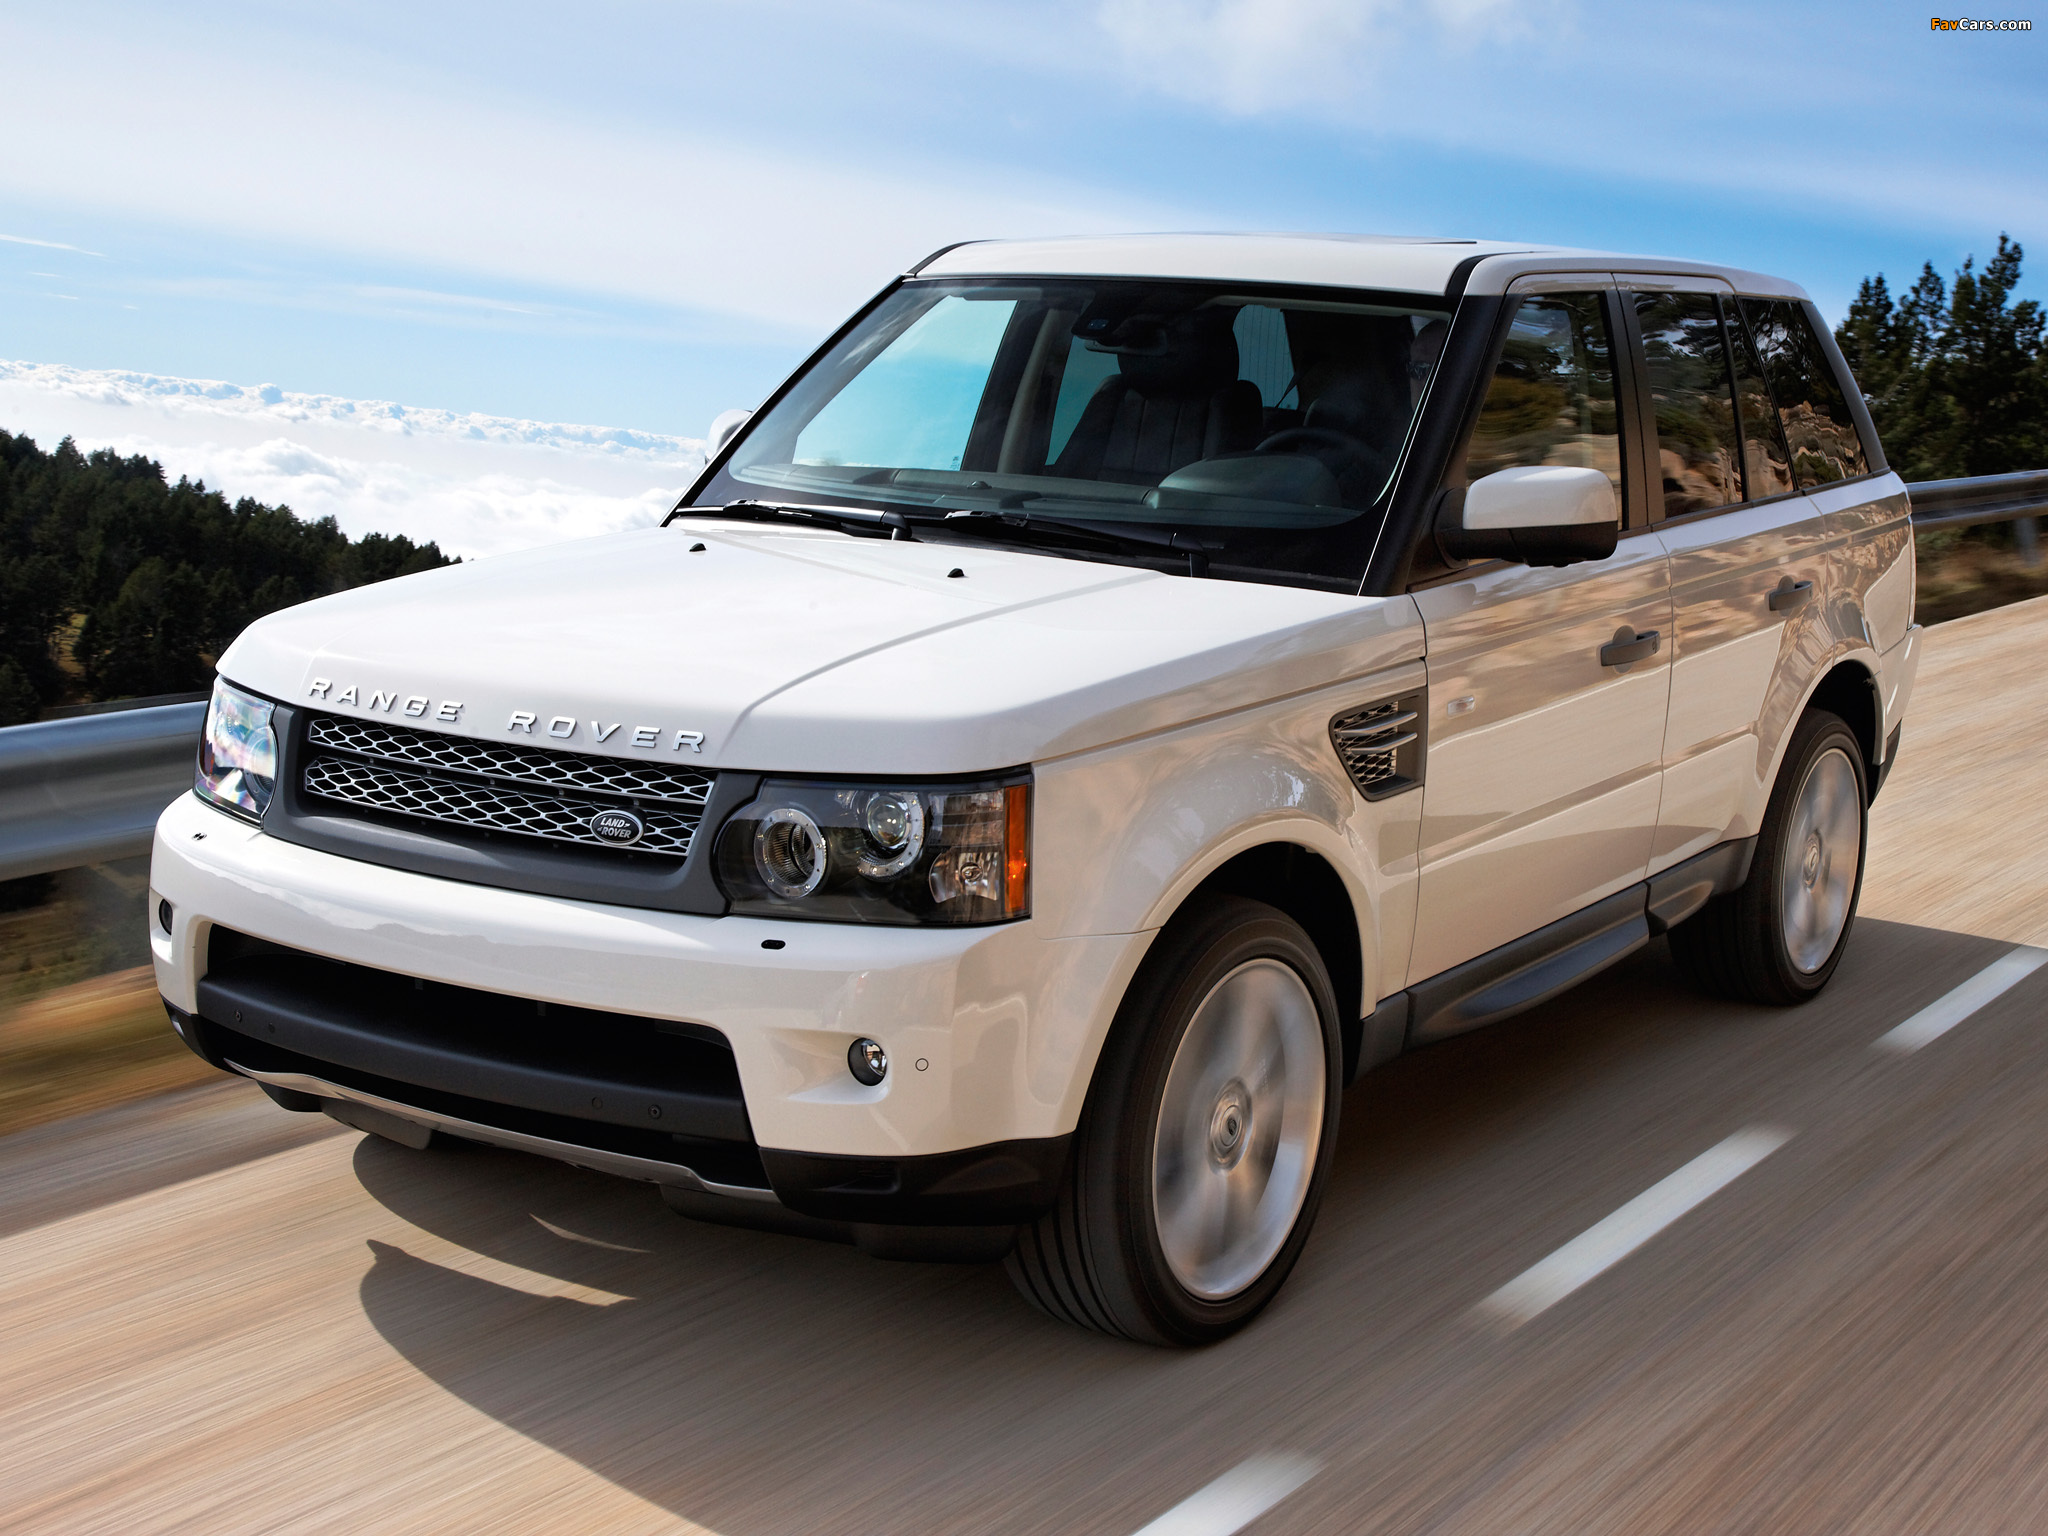 wallpapers_land-rover_range-rover-sport_2009_19